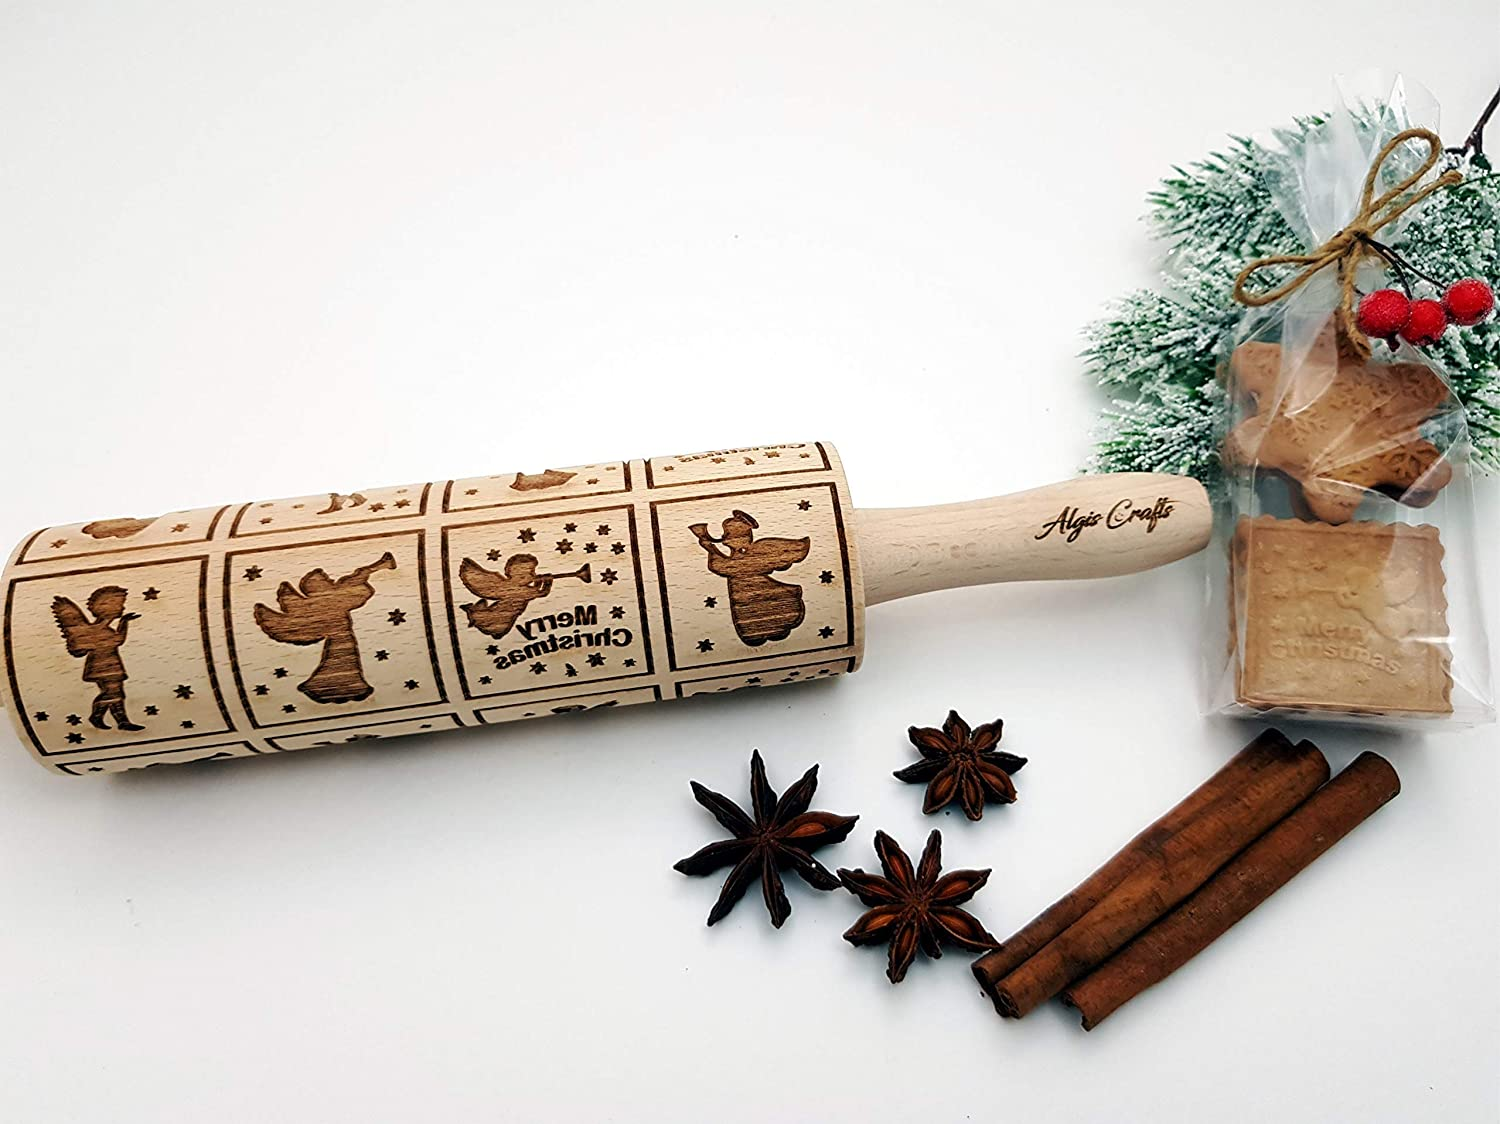 Christmas gingerbread cookies Christmas tree Embossing rolling pin with Christmas symbols FLYING ANGELS Rolling pin star snowflake